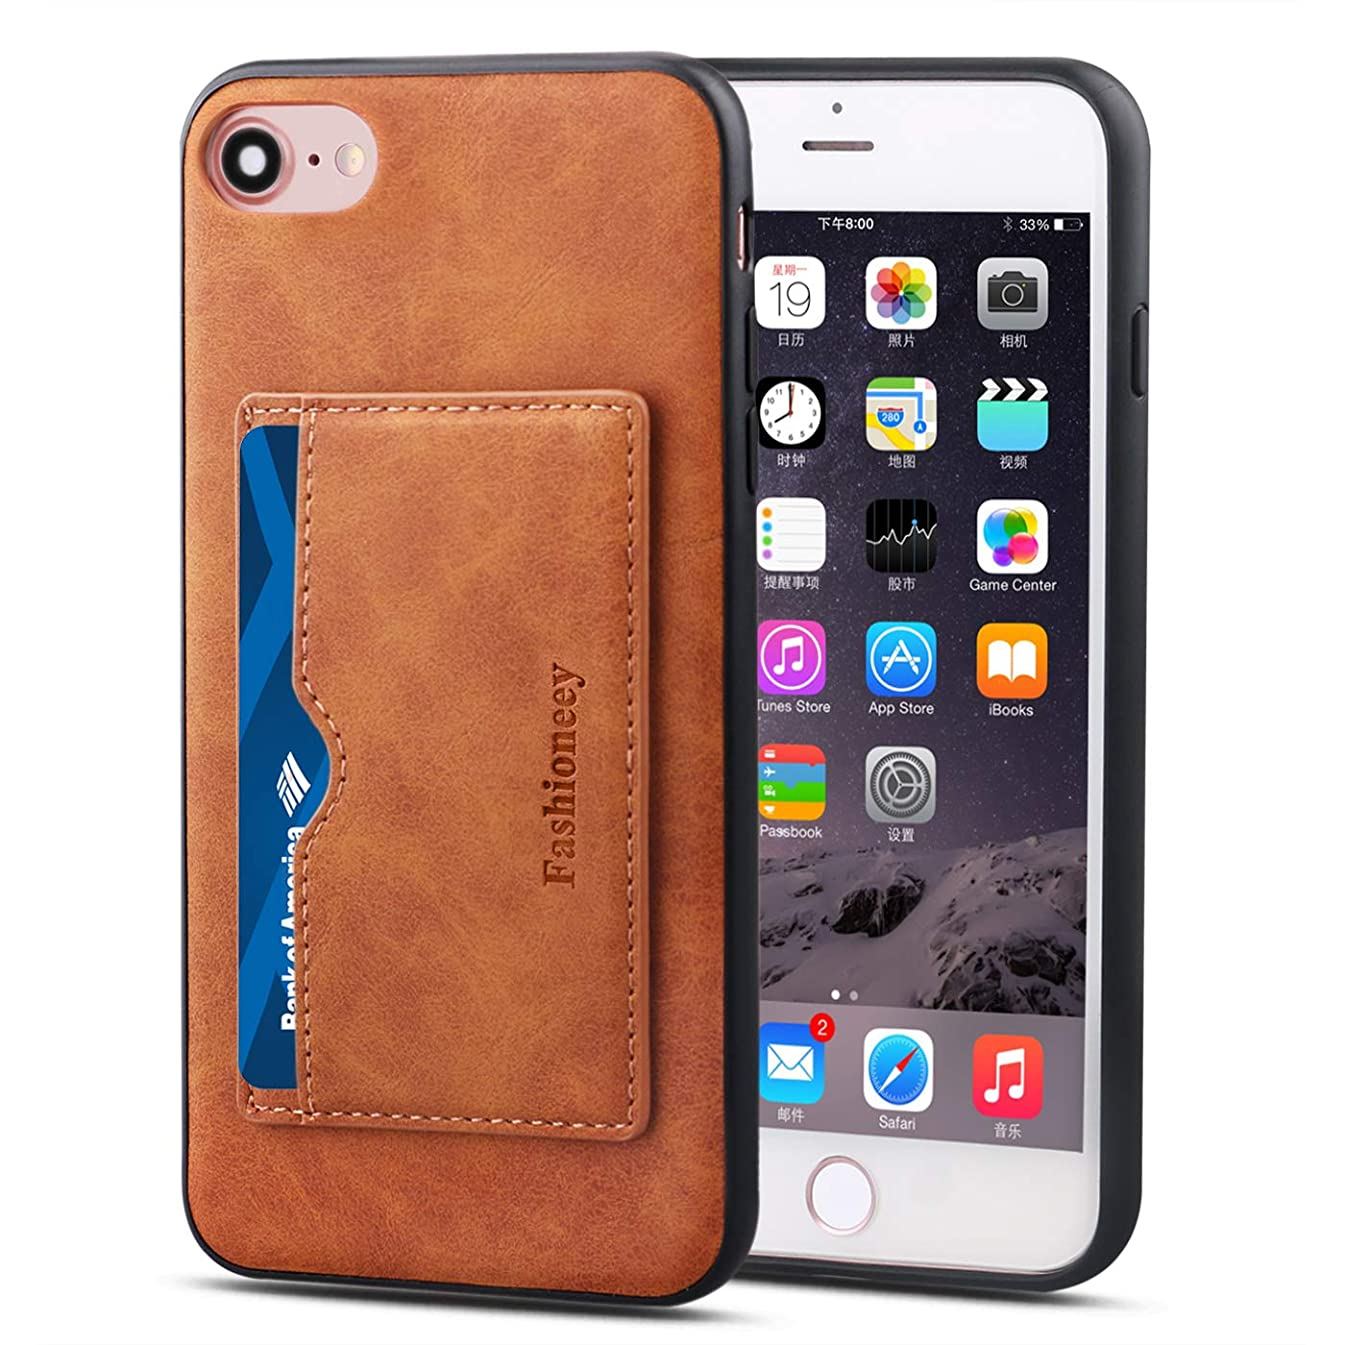 Fashioneey iPhone 8 Wallet Case, iPhone 7 Leather Card Holder Case, Ultra Slim Professional Cover with 2 Card Holder Slots Compatible iPhone 7 (2016)/ iPhone 8 (2017) 4.7